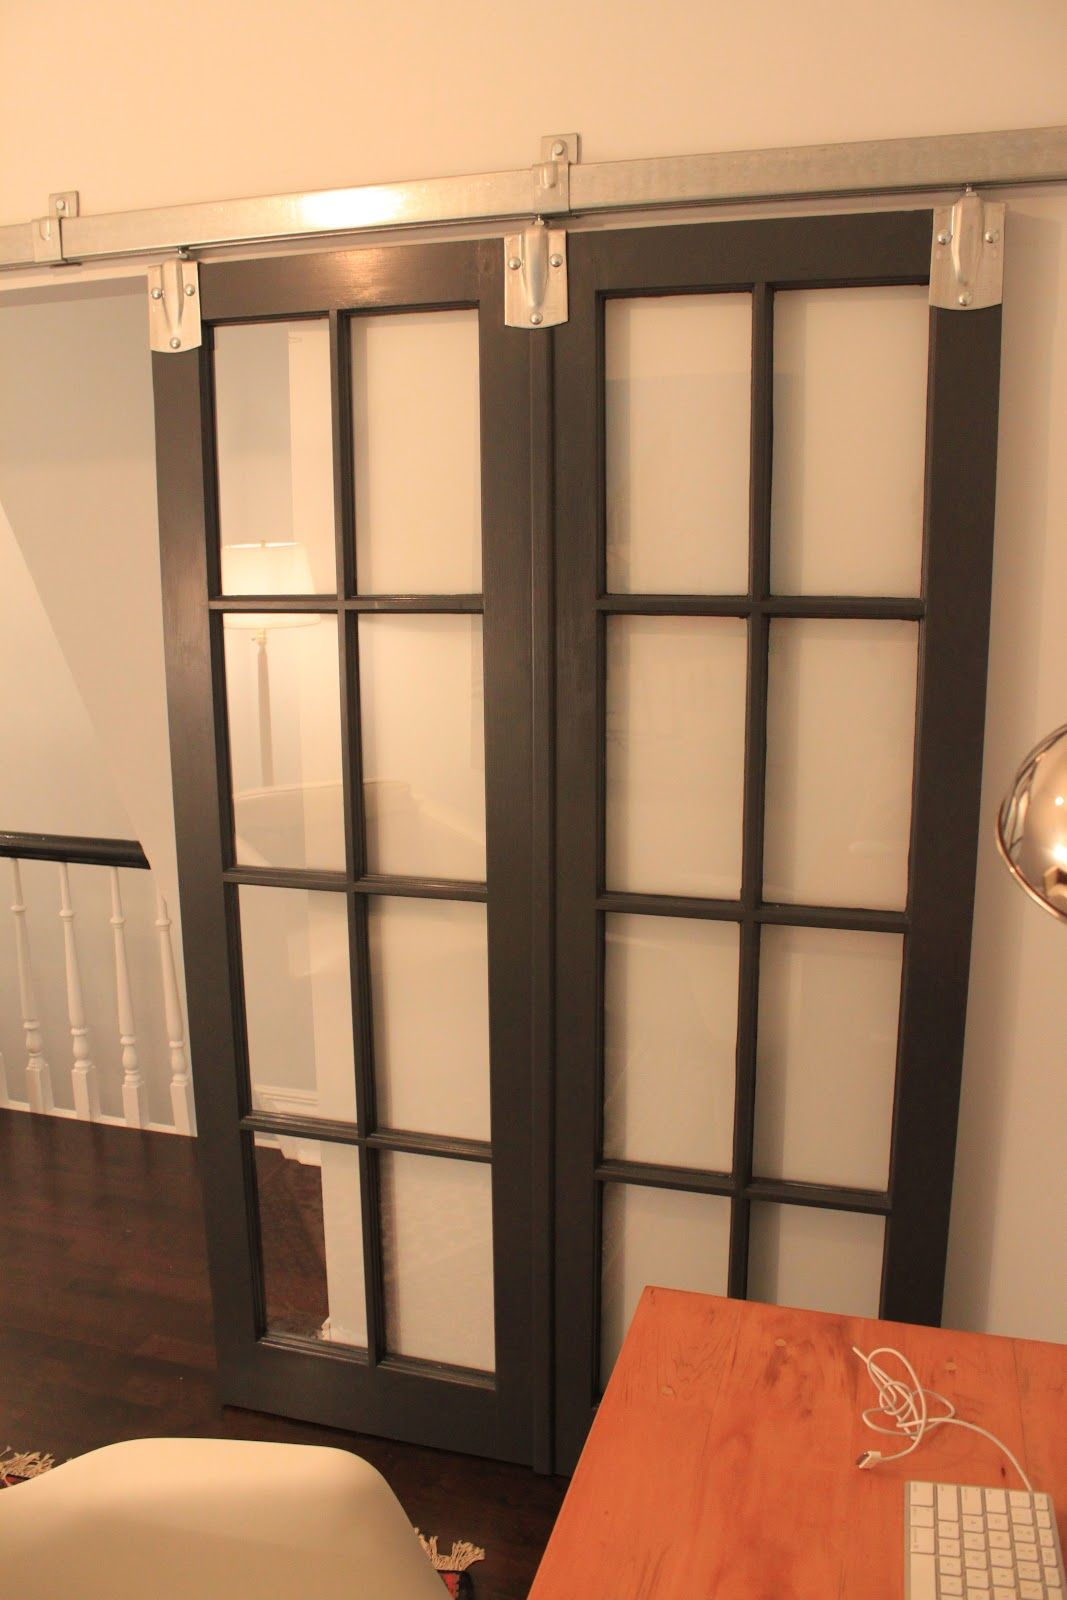 Roncesvalles Victorian Reno Diary French doors on barn rollers & Roncesvalles Victorian Reno Diary | House plans | Pinterest | Barn ...